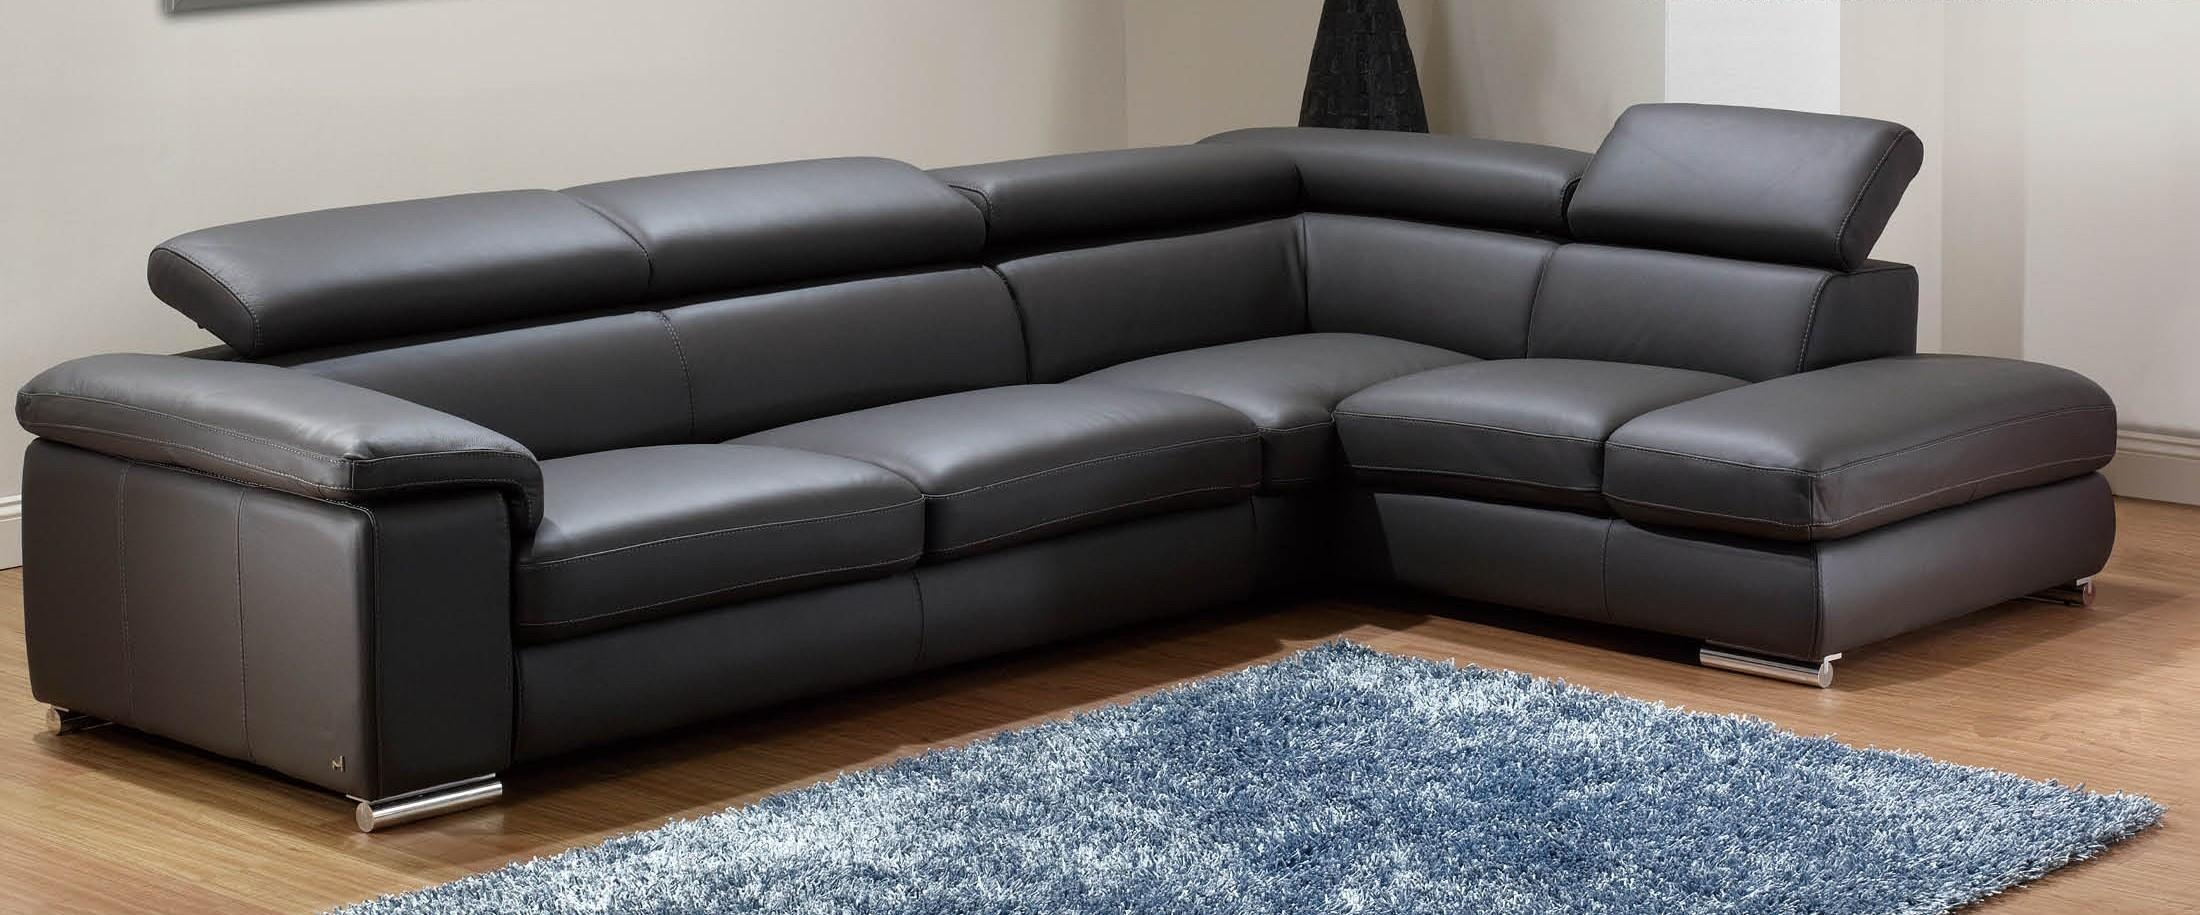 Modern Leather Sectional Recliner – Creditrestore Intended For Black Leather Chaise Sofas (Image 14 of 20)